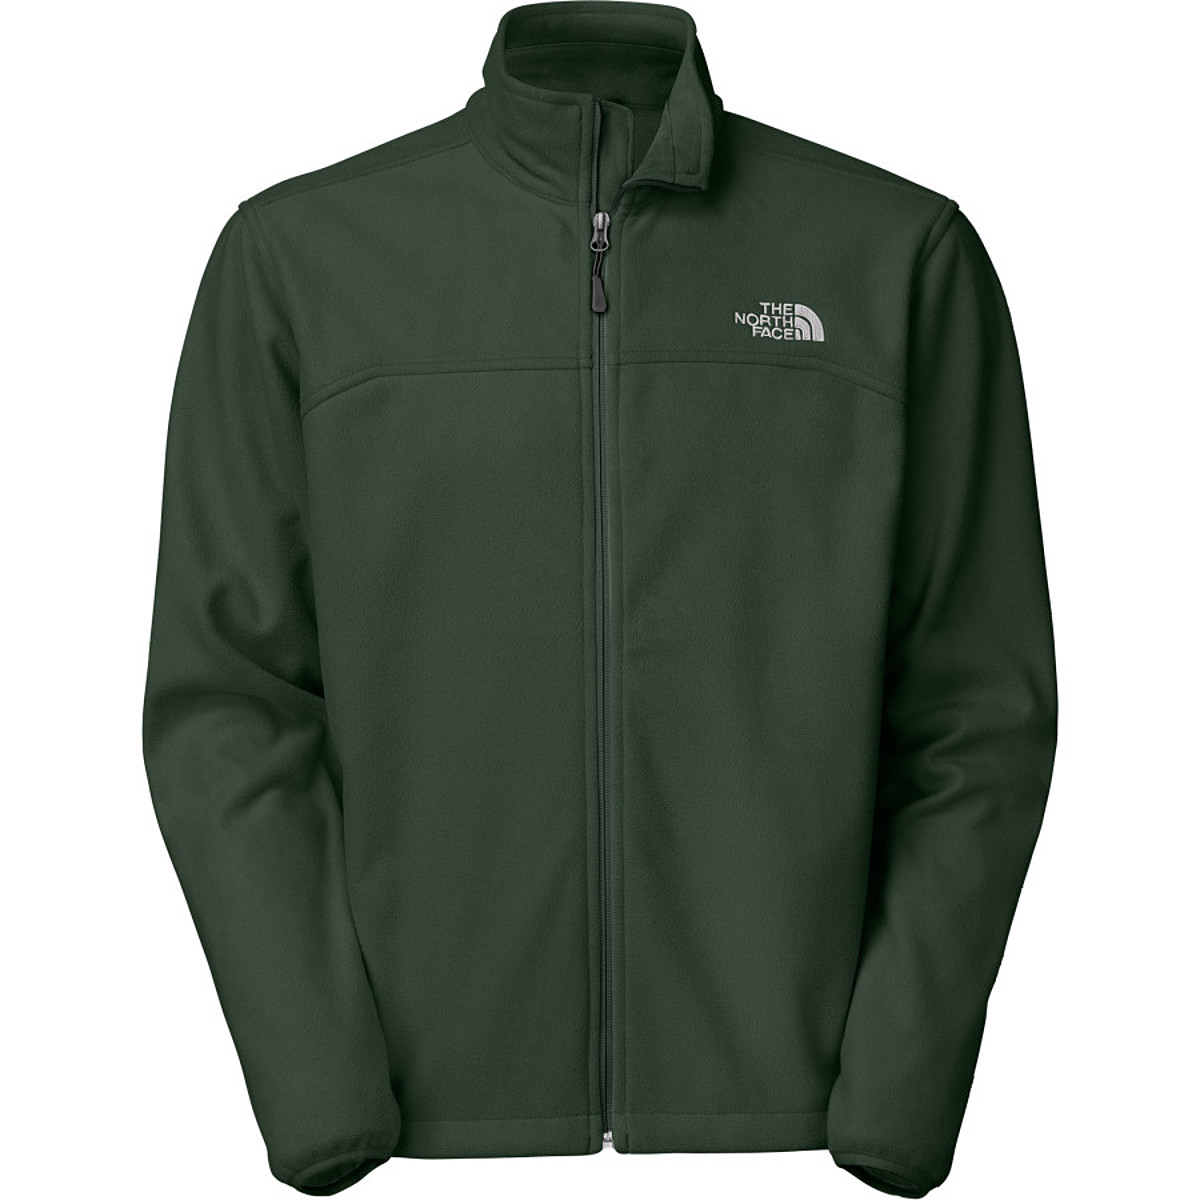 photo: The North Face Men's WindWall 1 Jacket fleece jacket